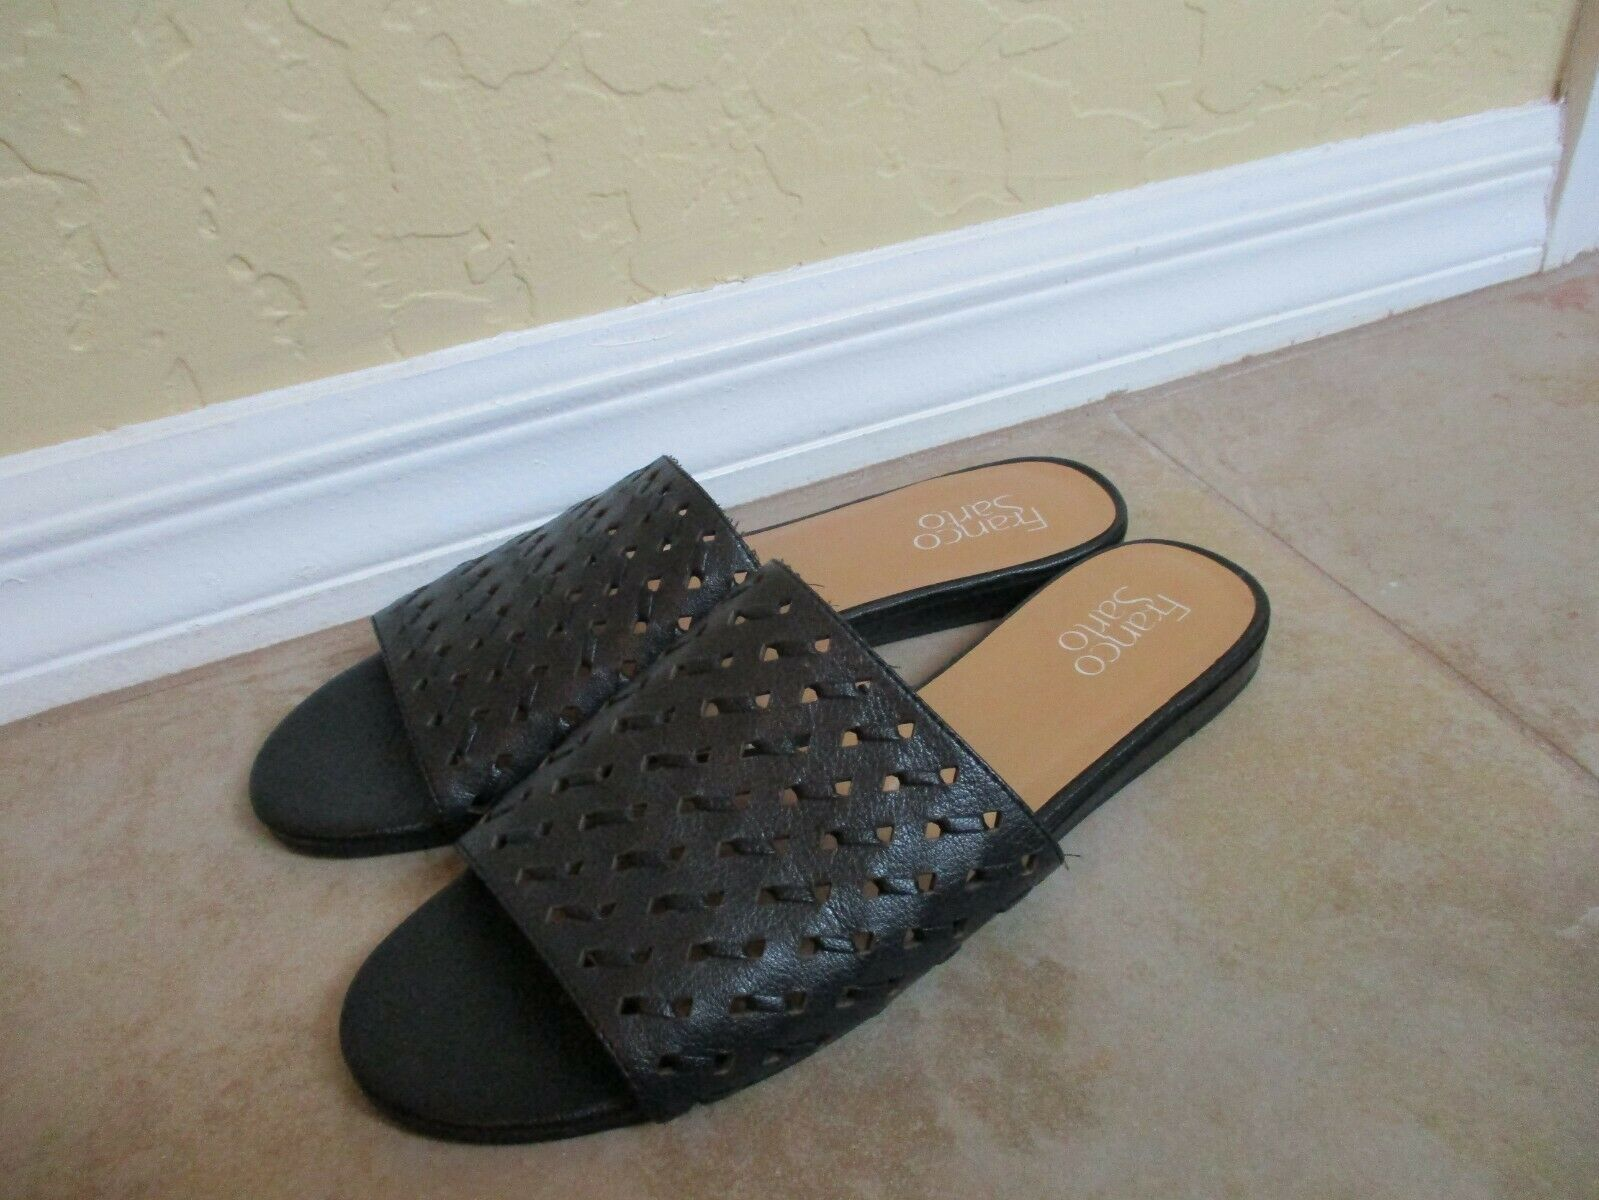 Franco Sarta Black Perforated Leather Mules For Women Size 9 Eur 39.5 image 9